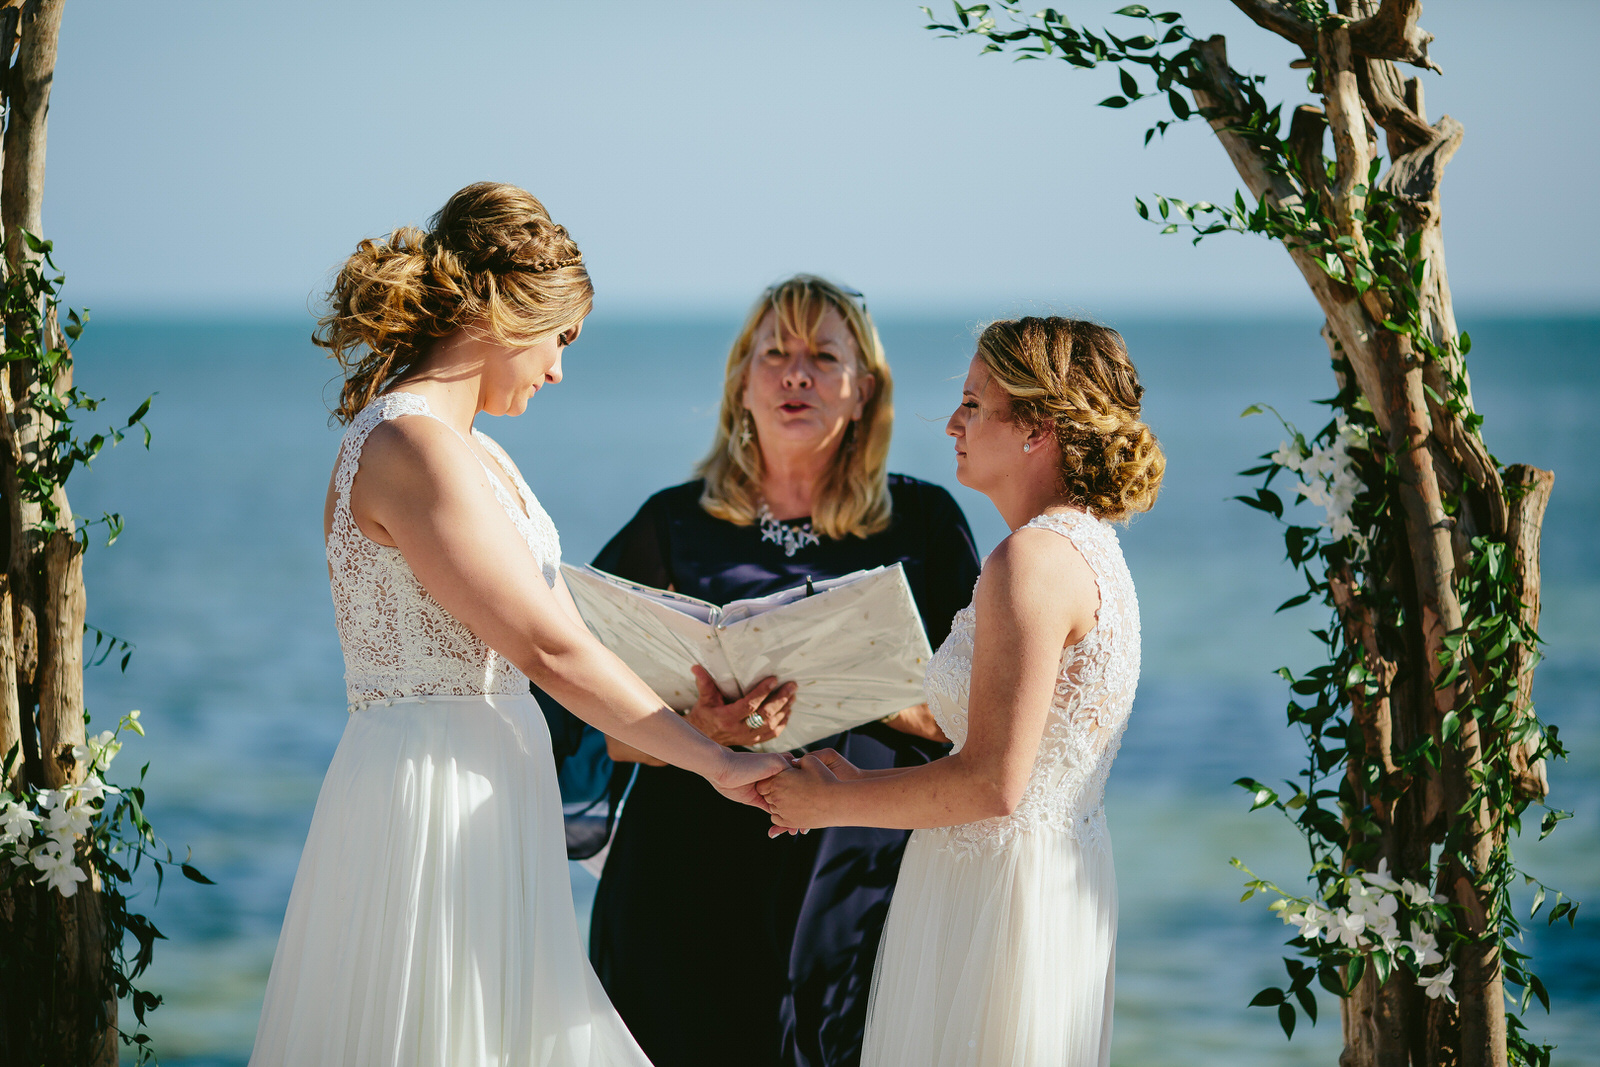 lgbtq_wedding_photographer_tiny_house_photo_amara_cay_florida_keys_weddings.jpg